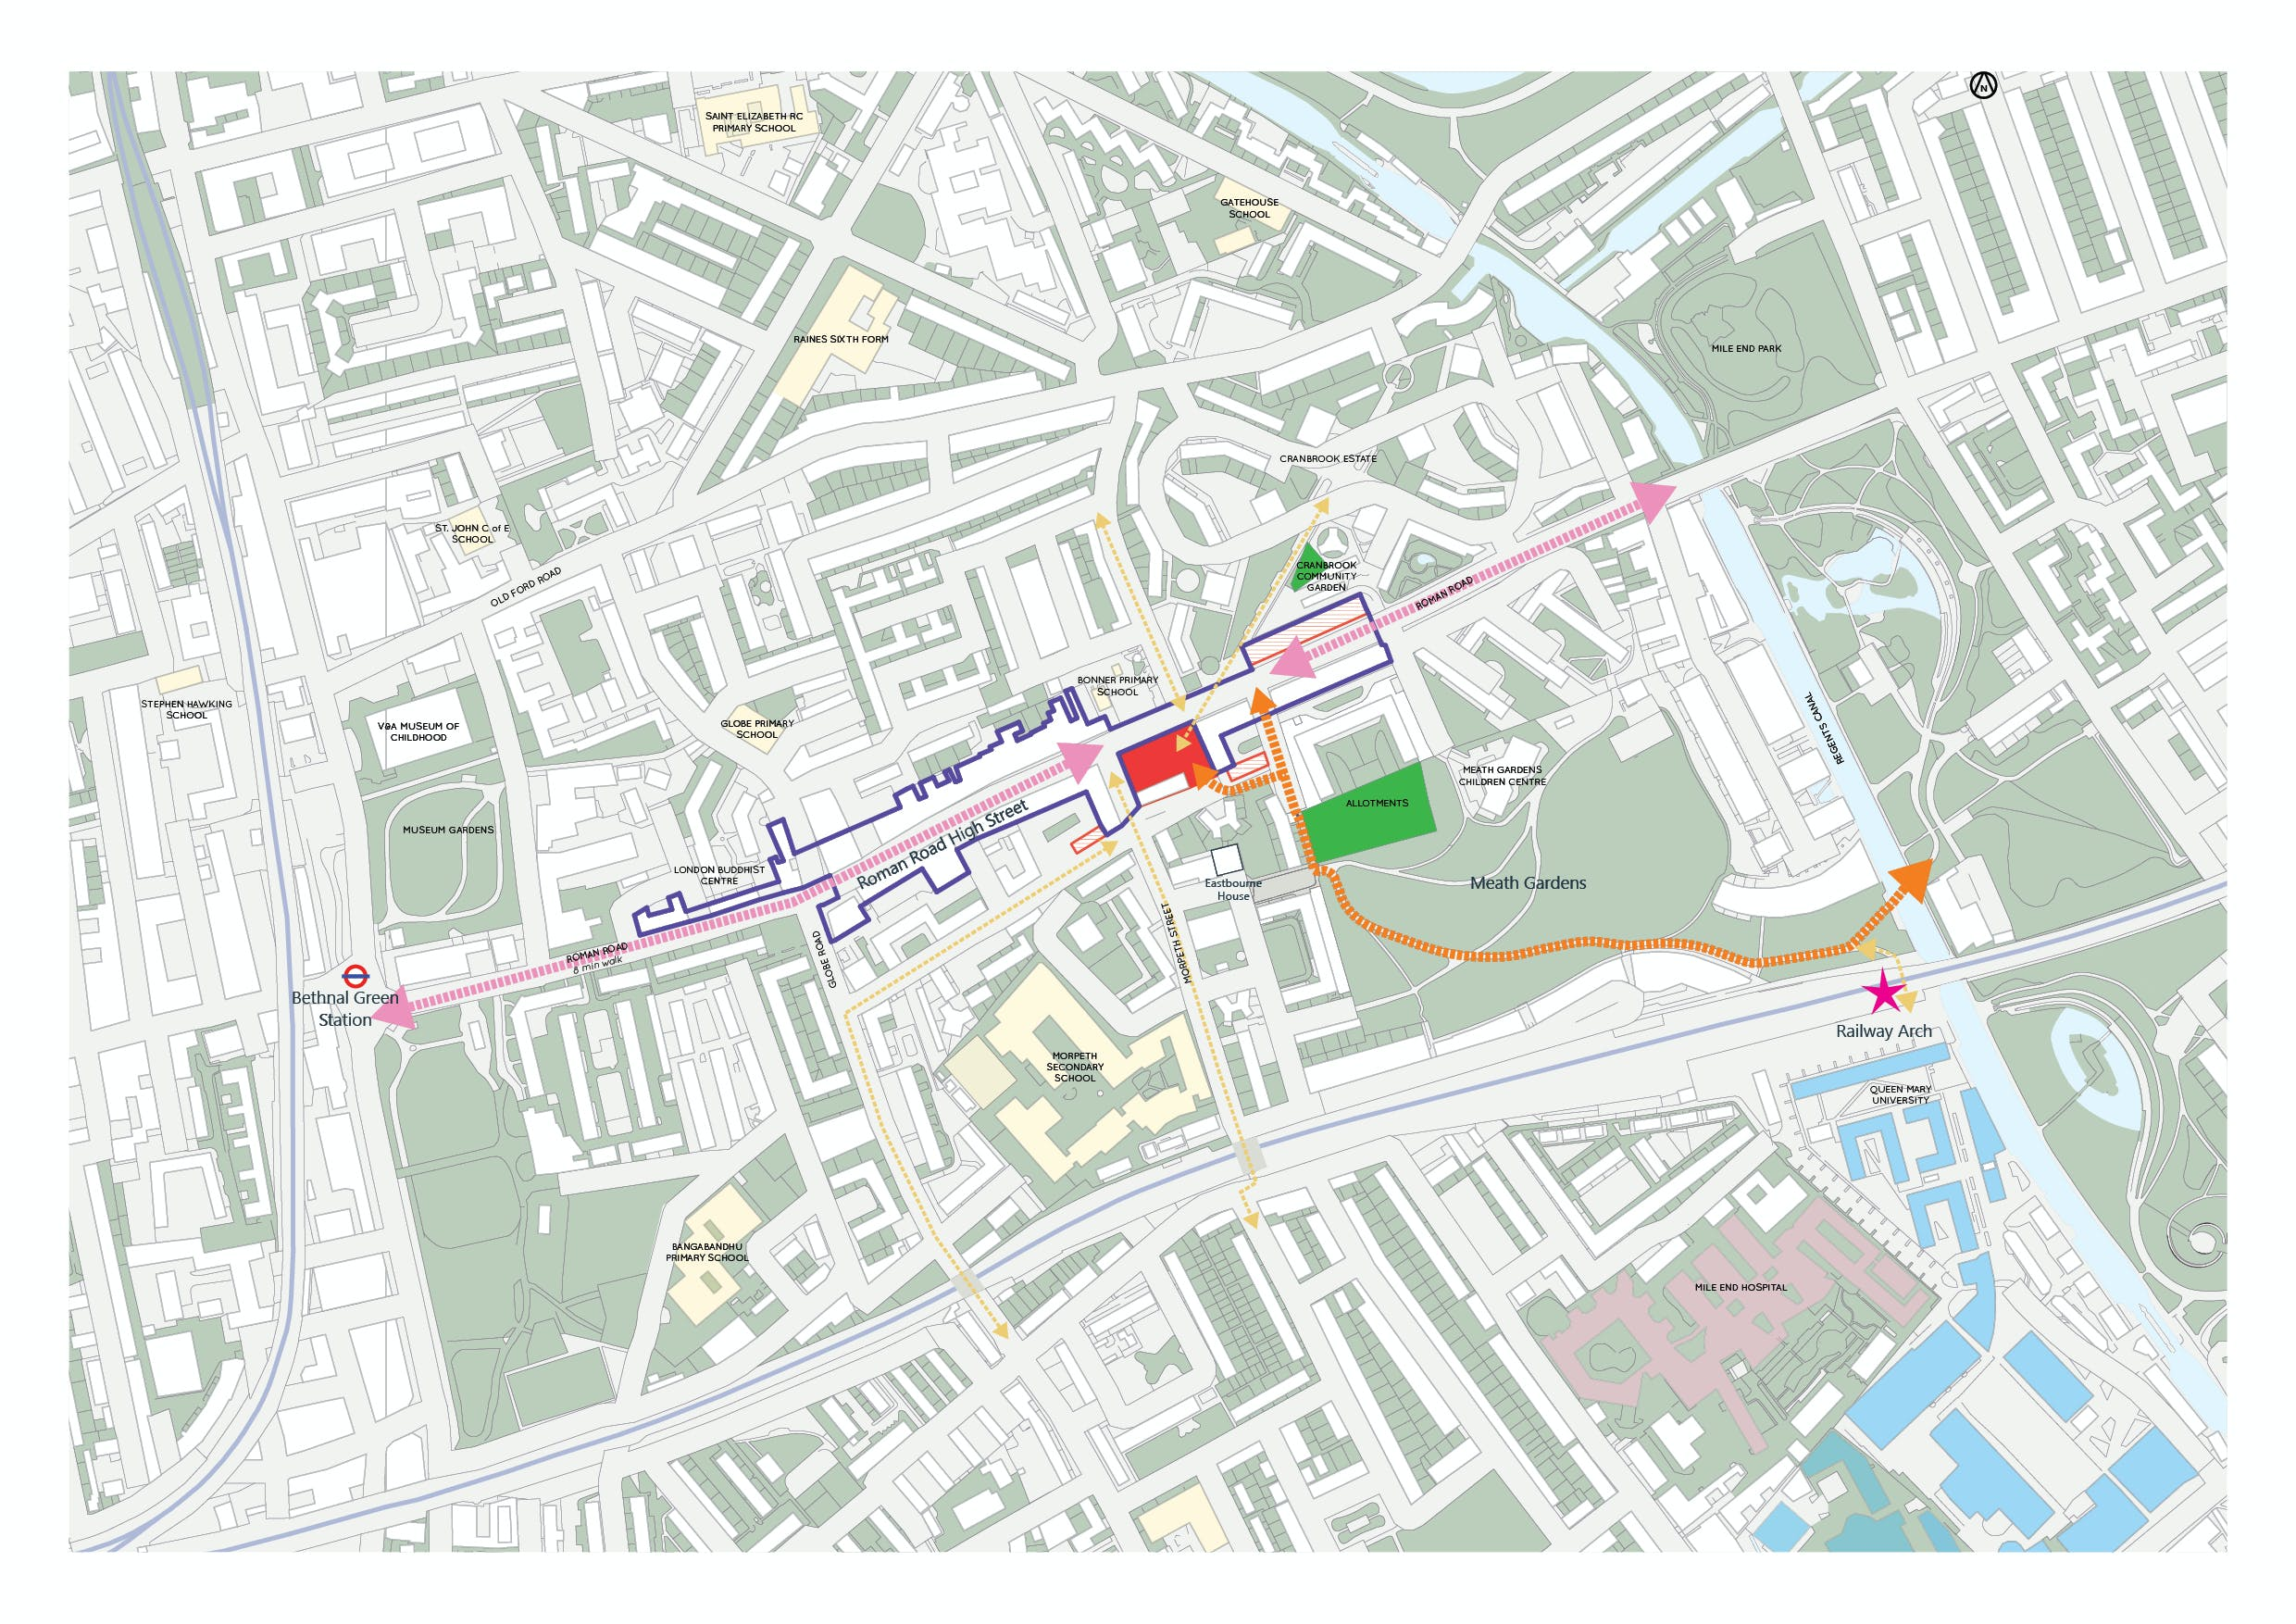 Roman road west regeneration programme masterplan